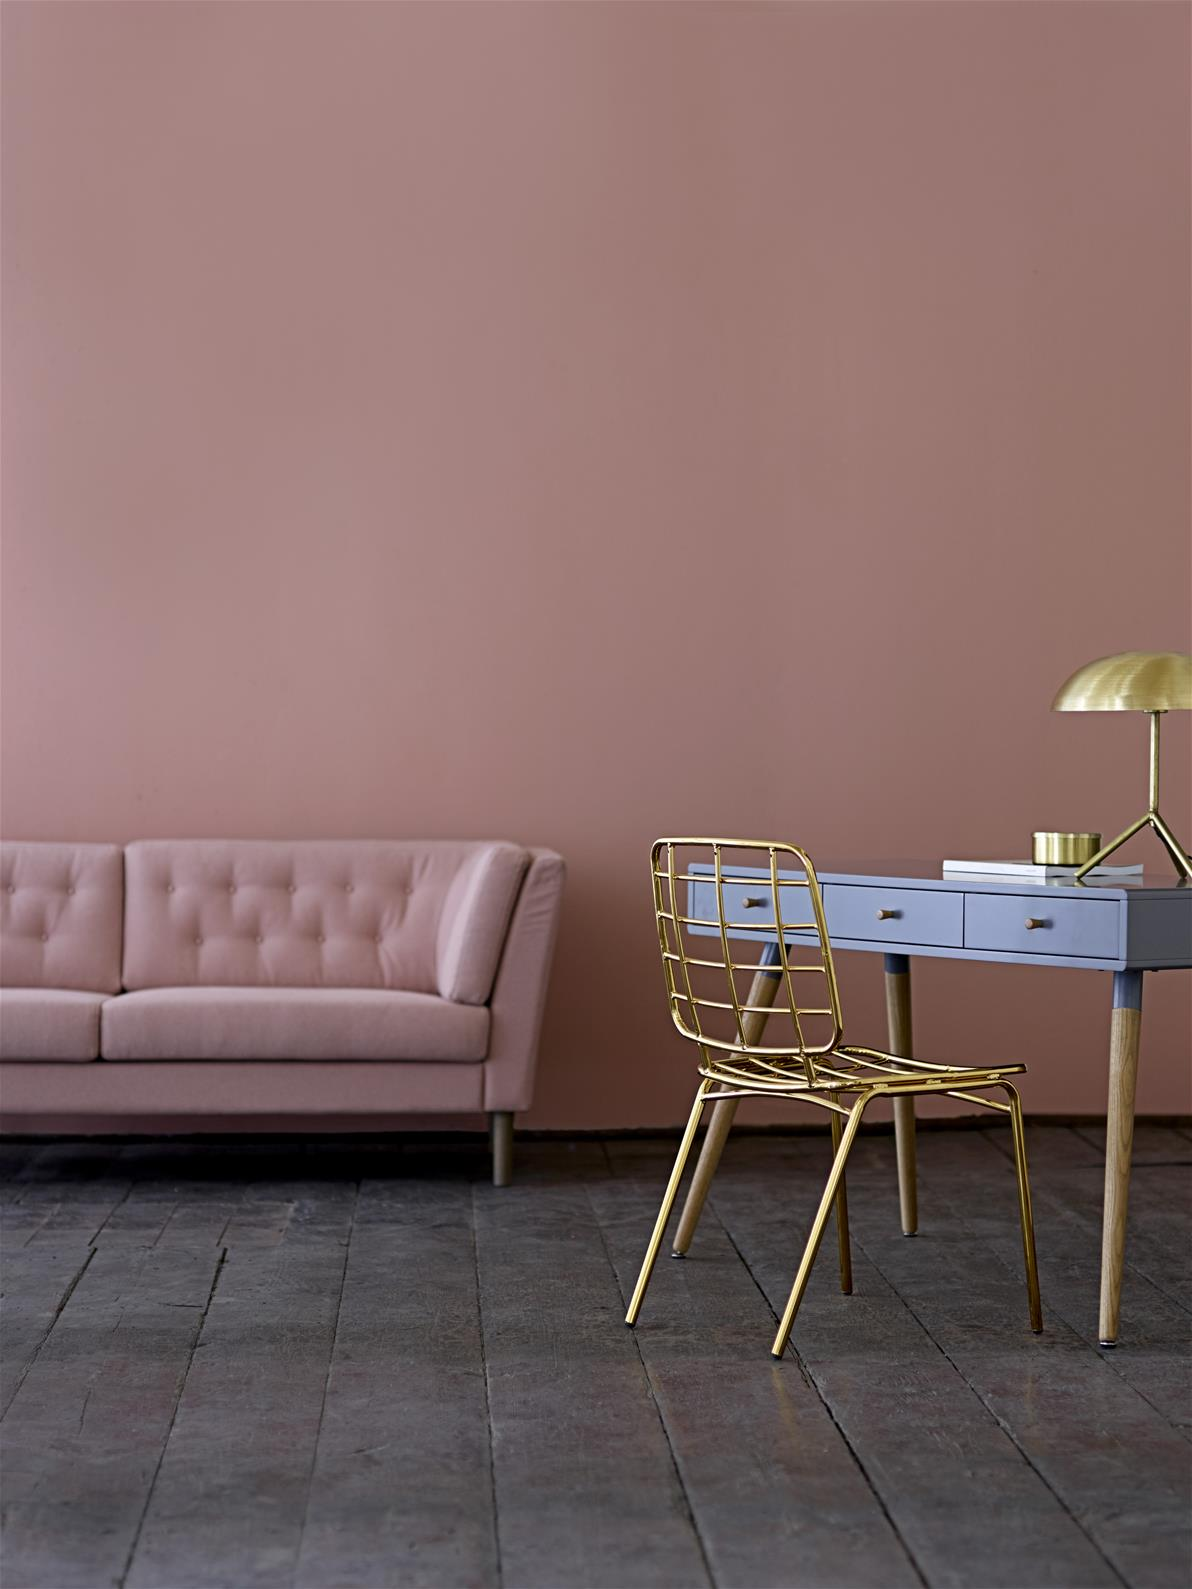 Interior Design Trend For 2016 Pink Blue Is In Fashion